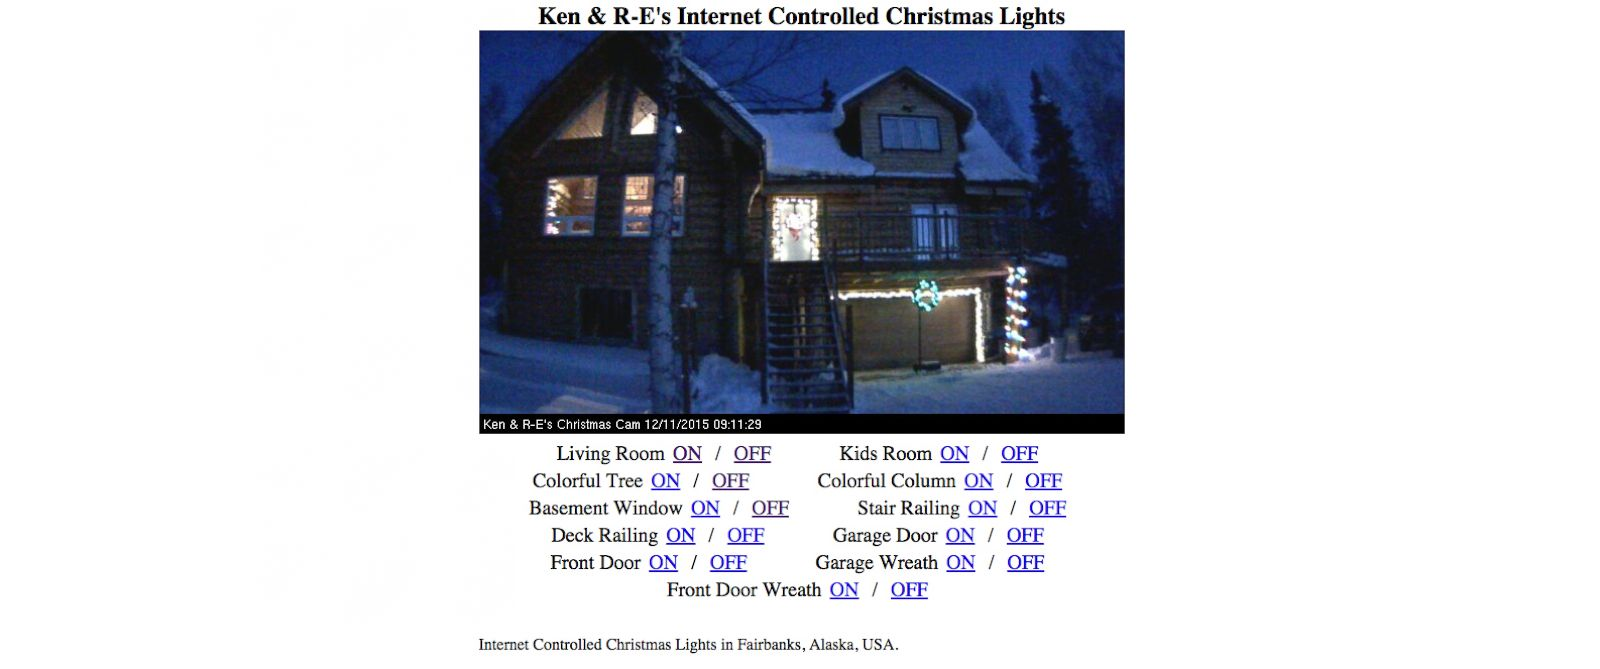 PHOTO: Ken Woods lets visitors to his website control his Christmas lights.